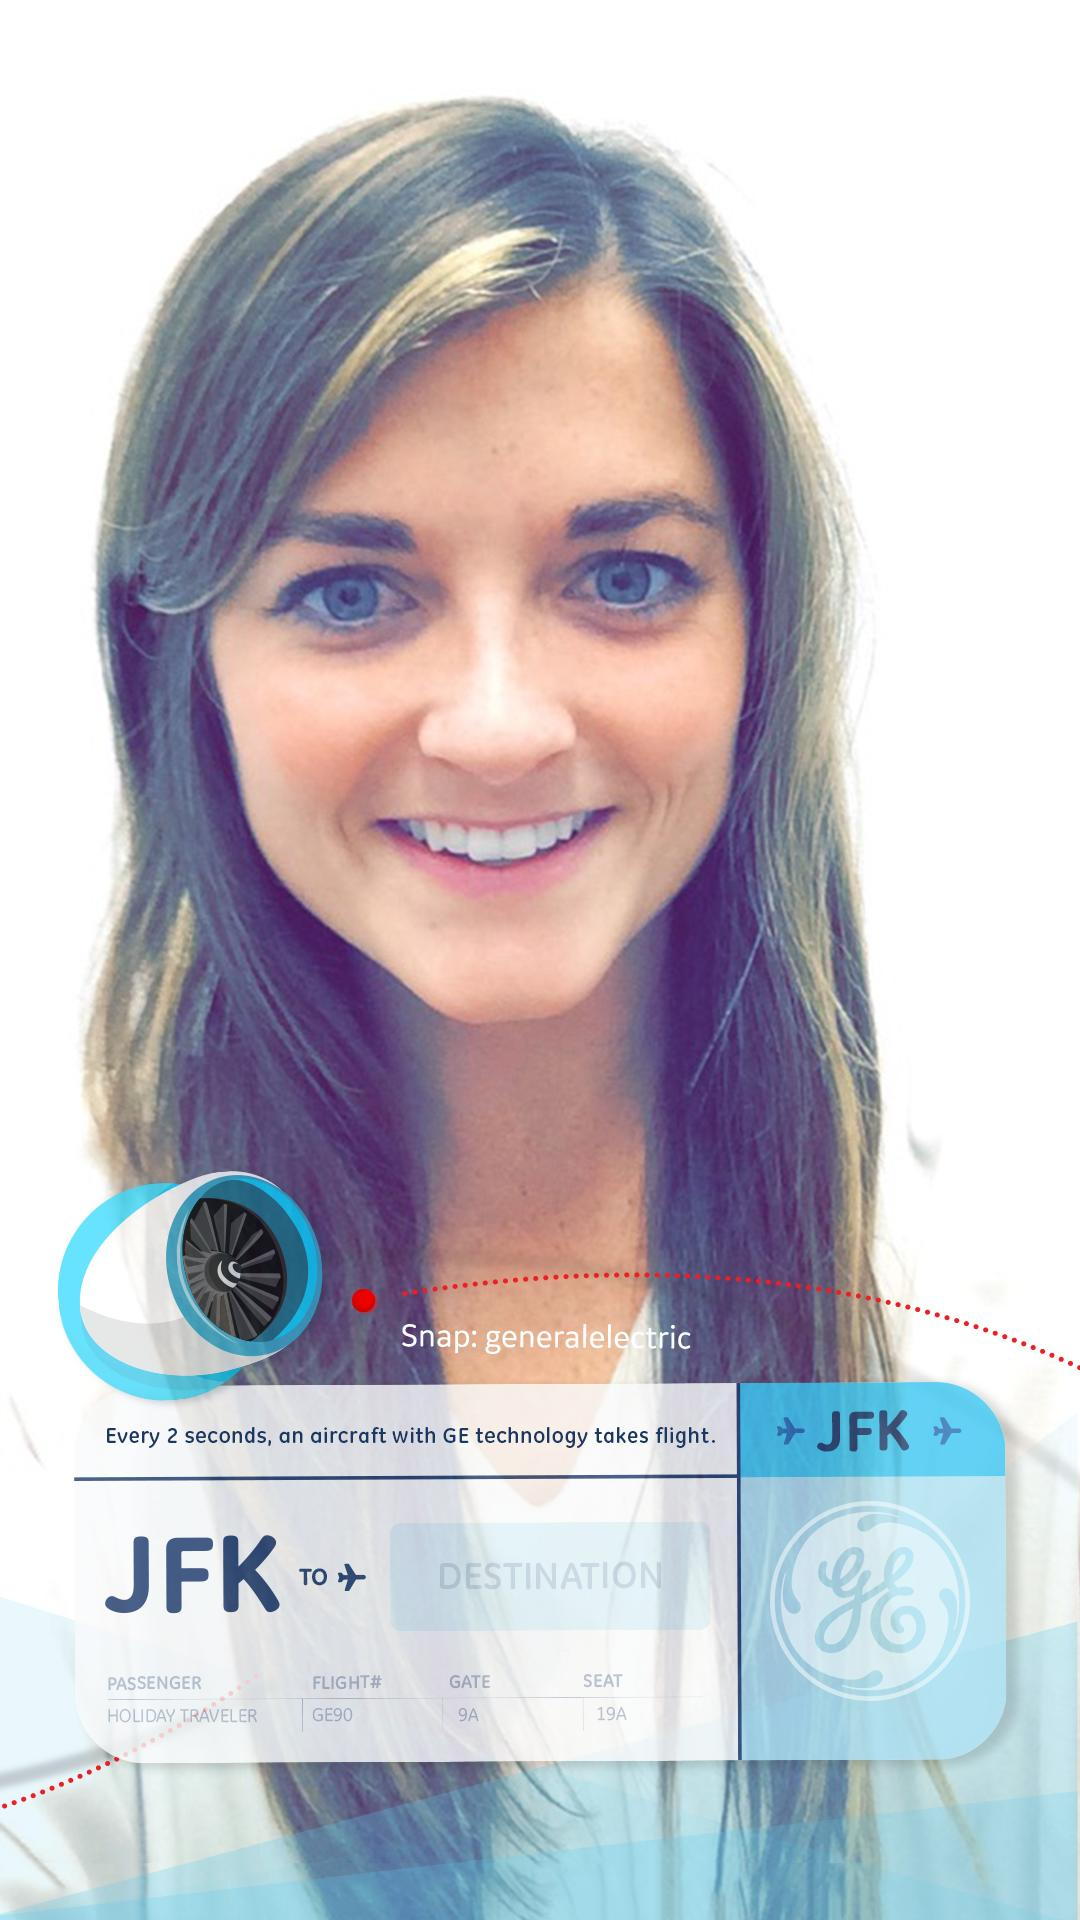 If you're traveling home for the holidays, GE wants you to use this Snapchat filter